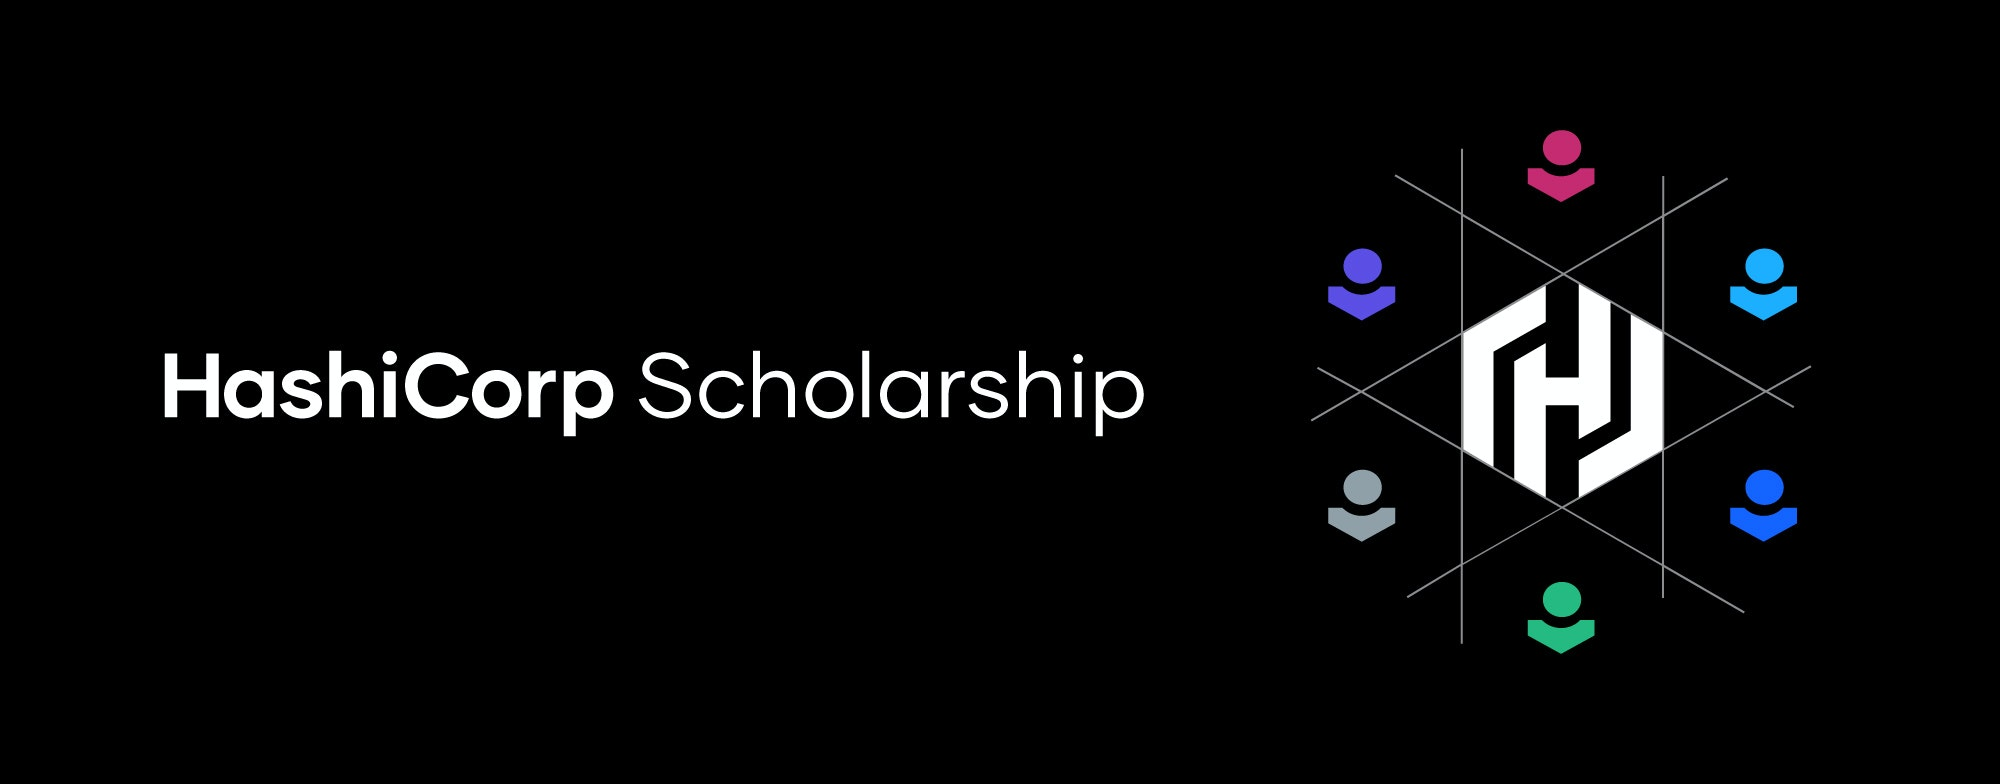 HashiDays Sydney and HashiConf EU Scholarship Applications Now Open